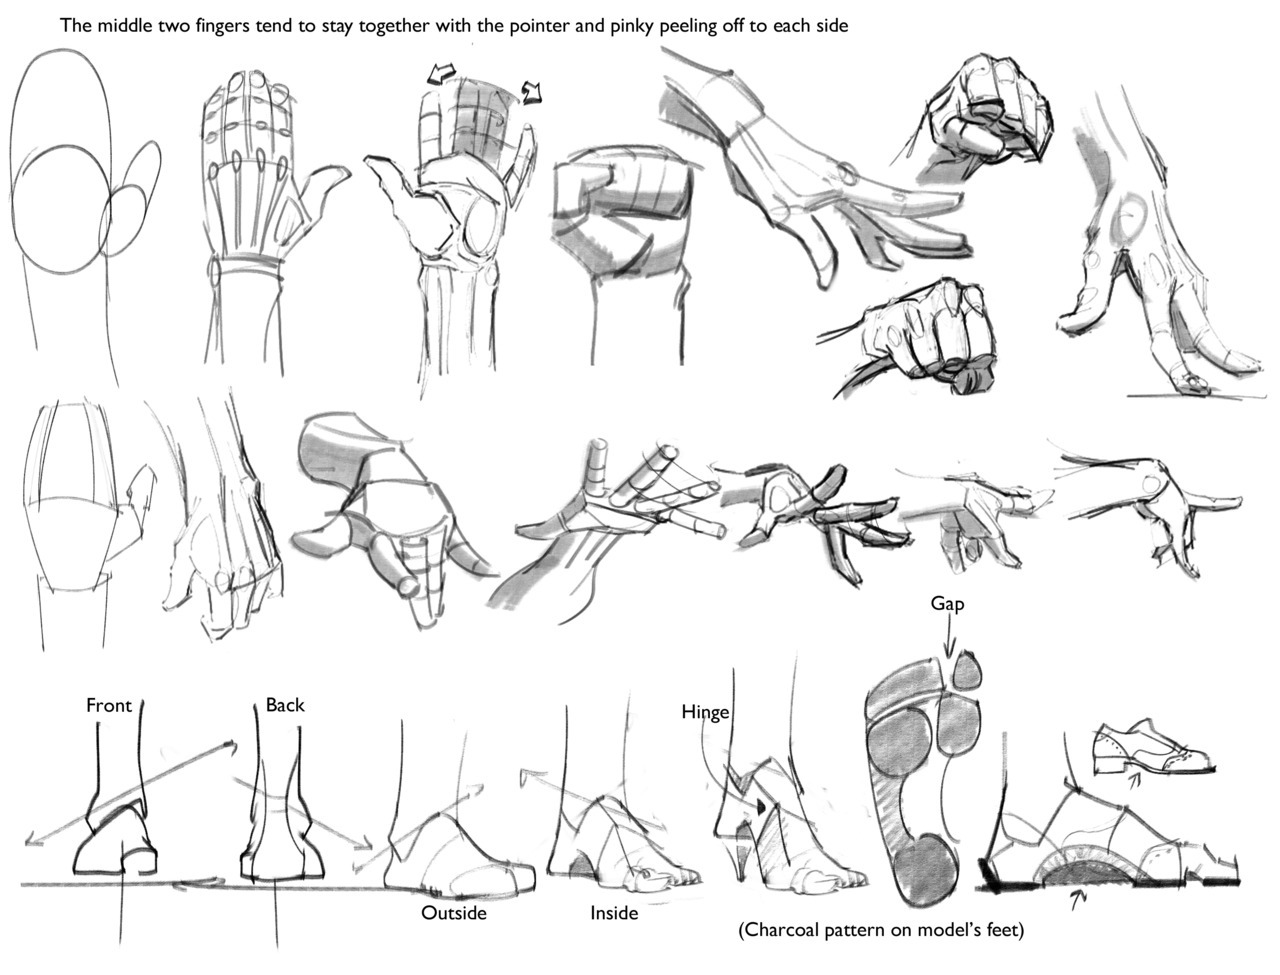 Drawn fist hand and foot Hand  hands drawing hand